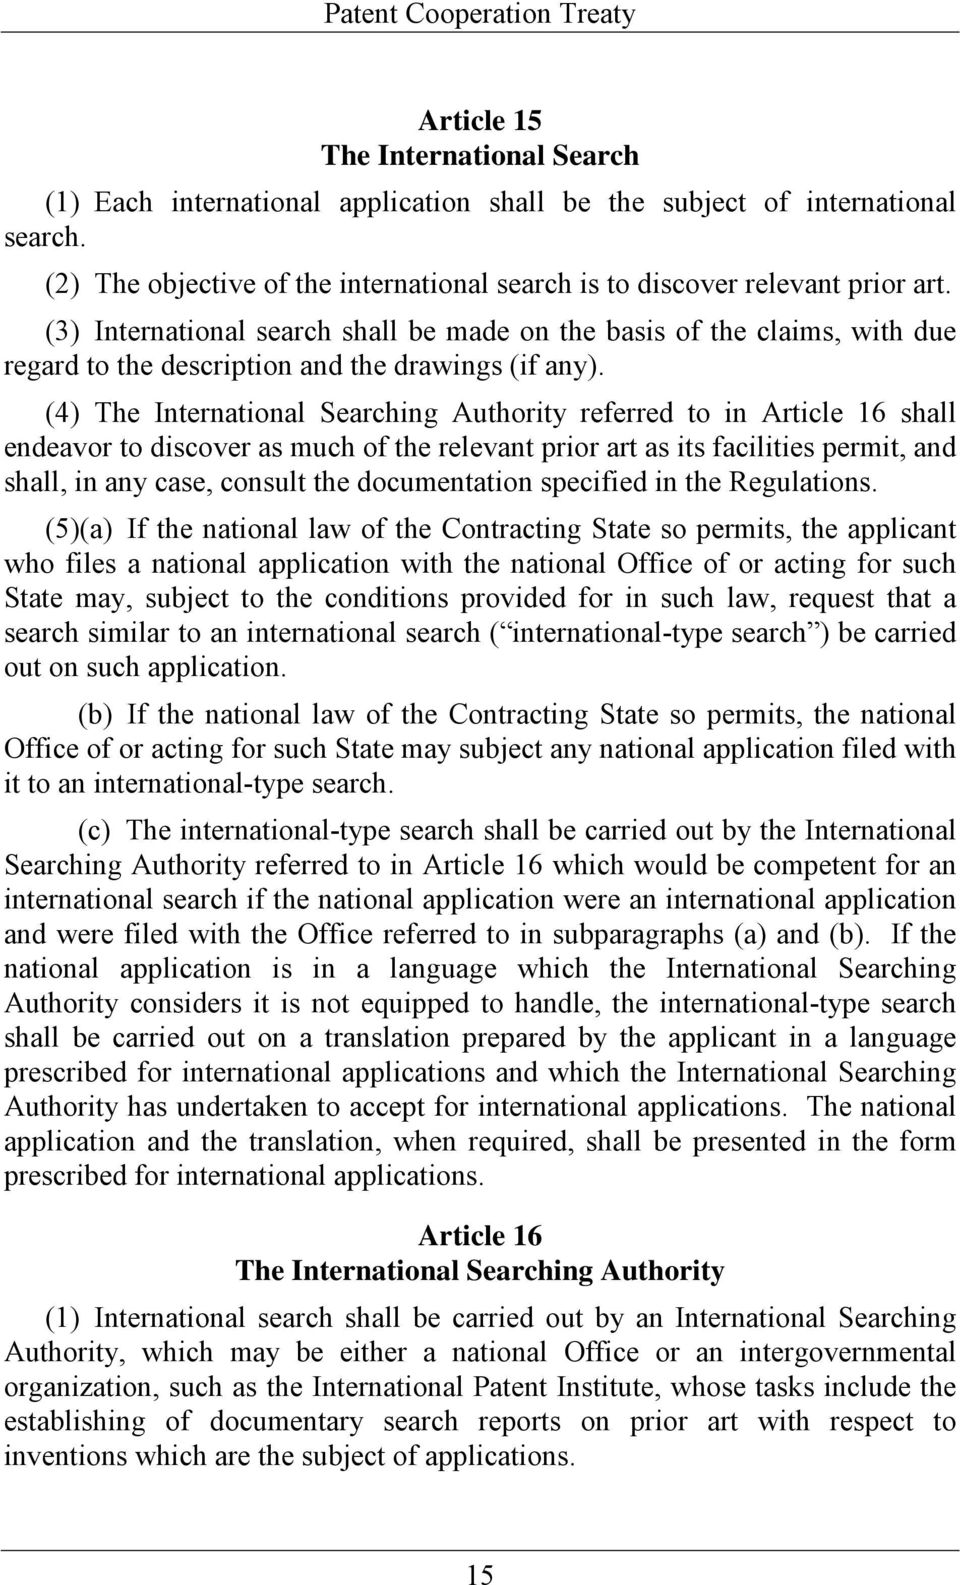 (4) The International Searching Authority referred to in Article 16 shall endeavor to discover as much of the relevant prior art as its facilities permit, and shall, in any case, consult the